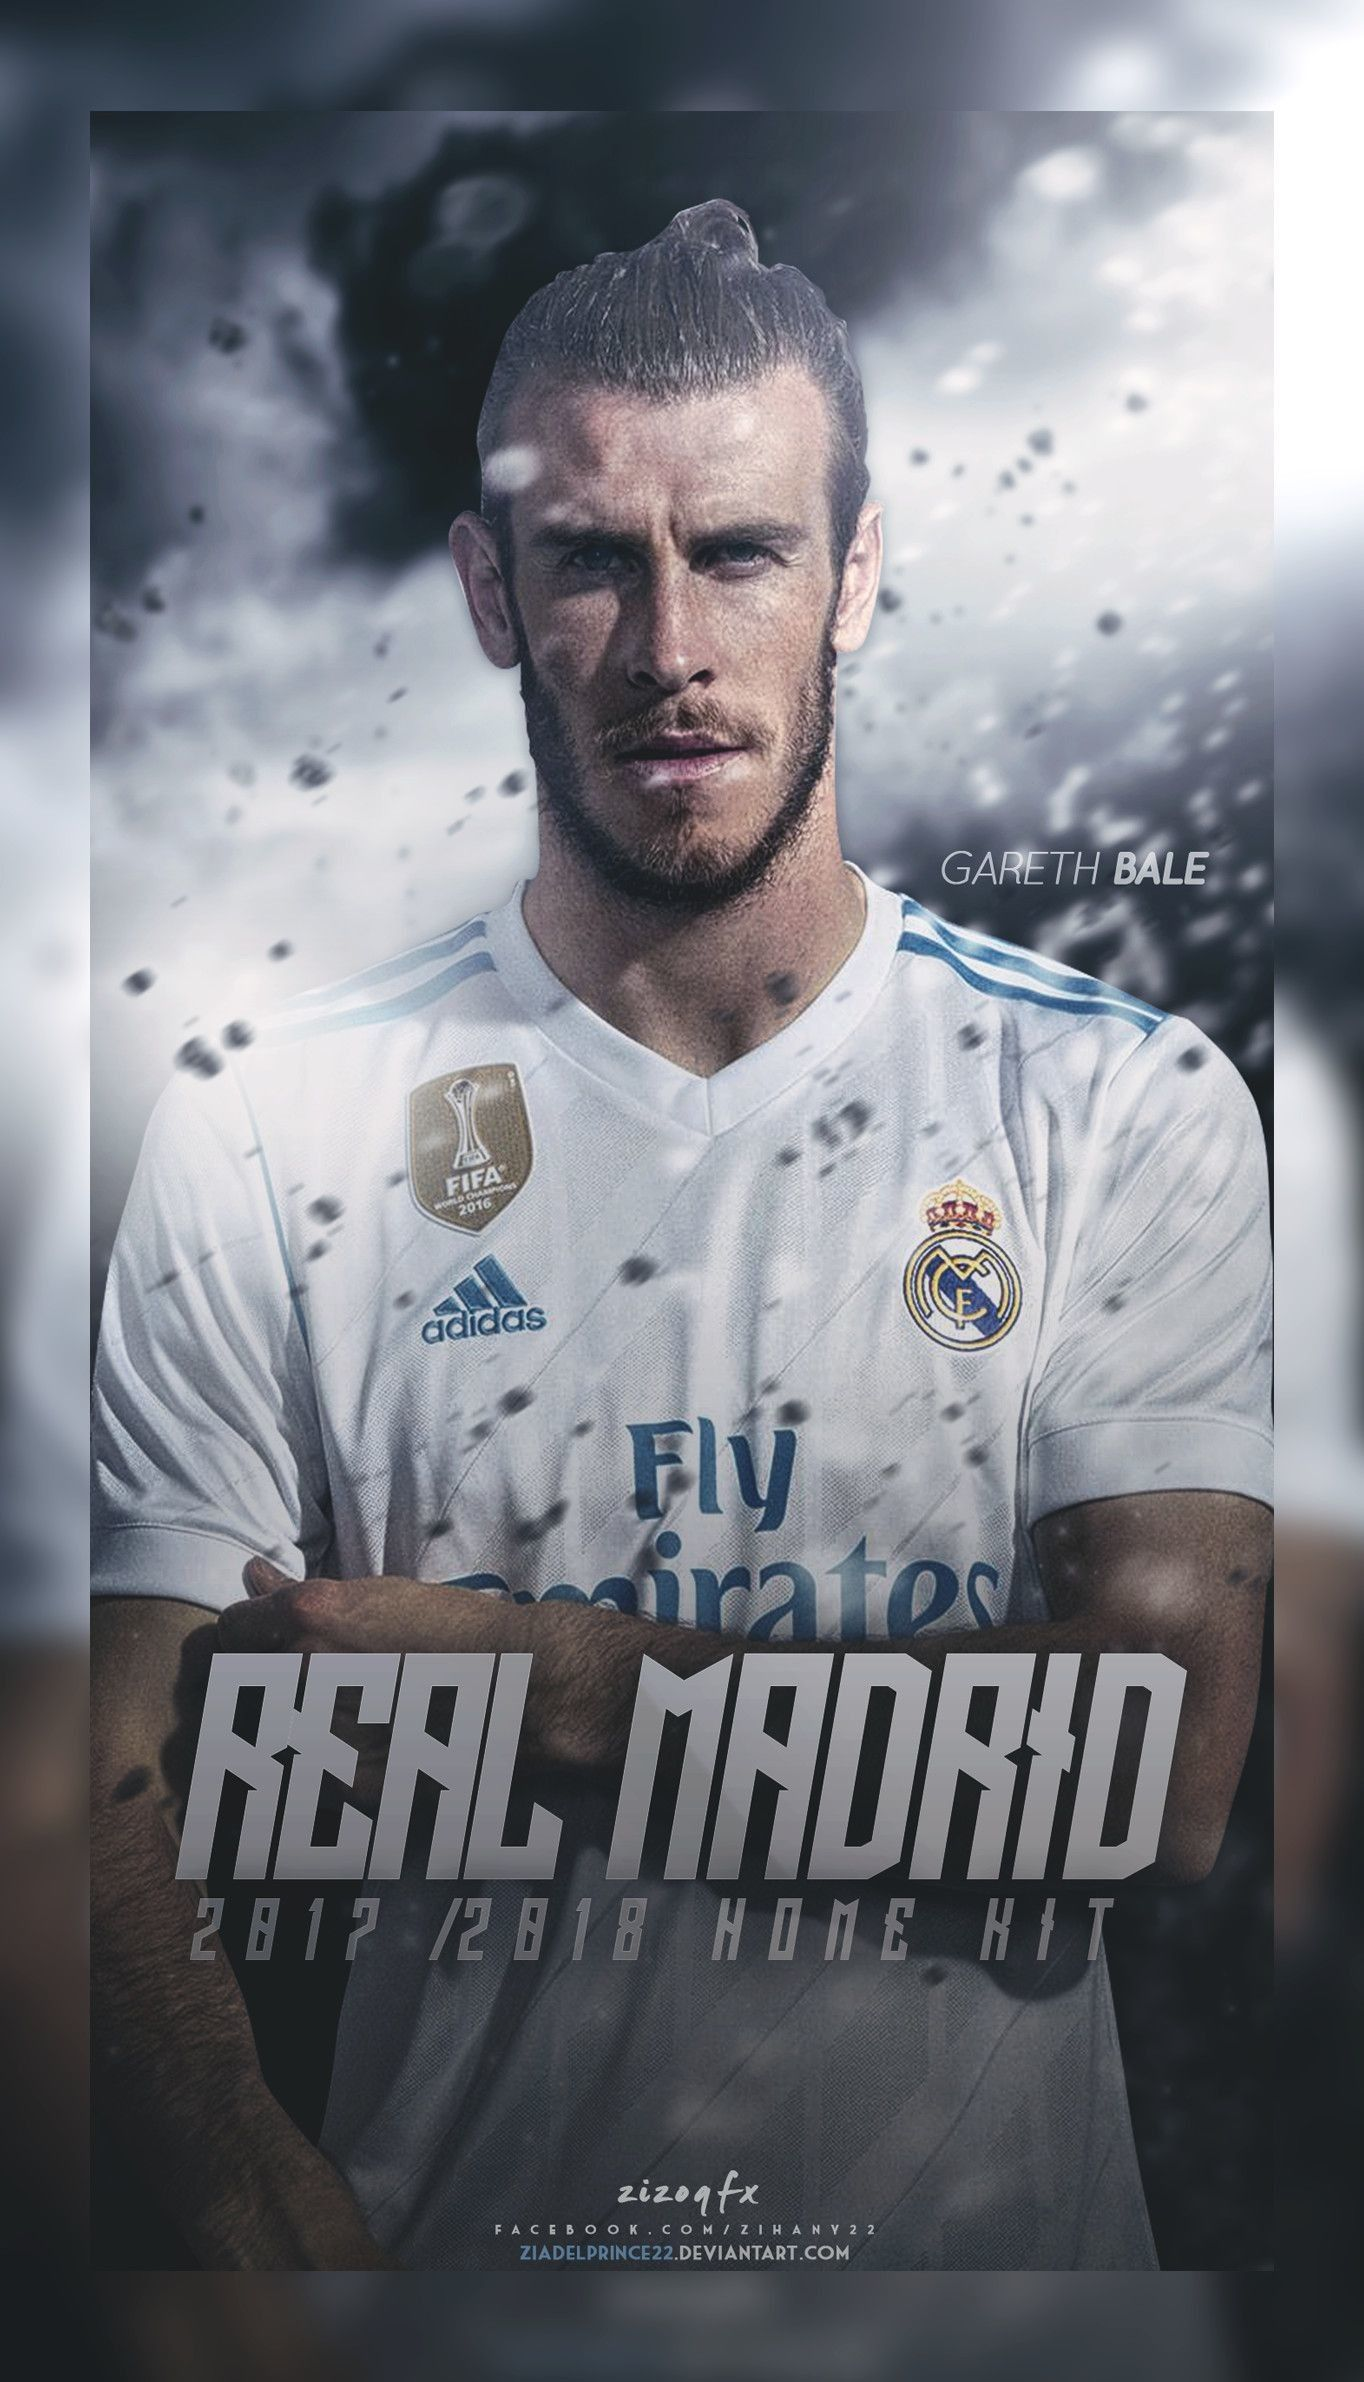 Gareth Bale Hd Wallpapers 2018 In 2020 Real Madrid Wallpapers Madrid Wallpaper Gareth Bale